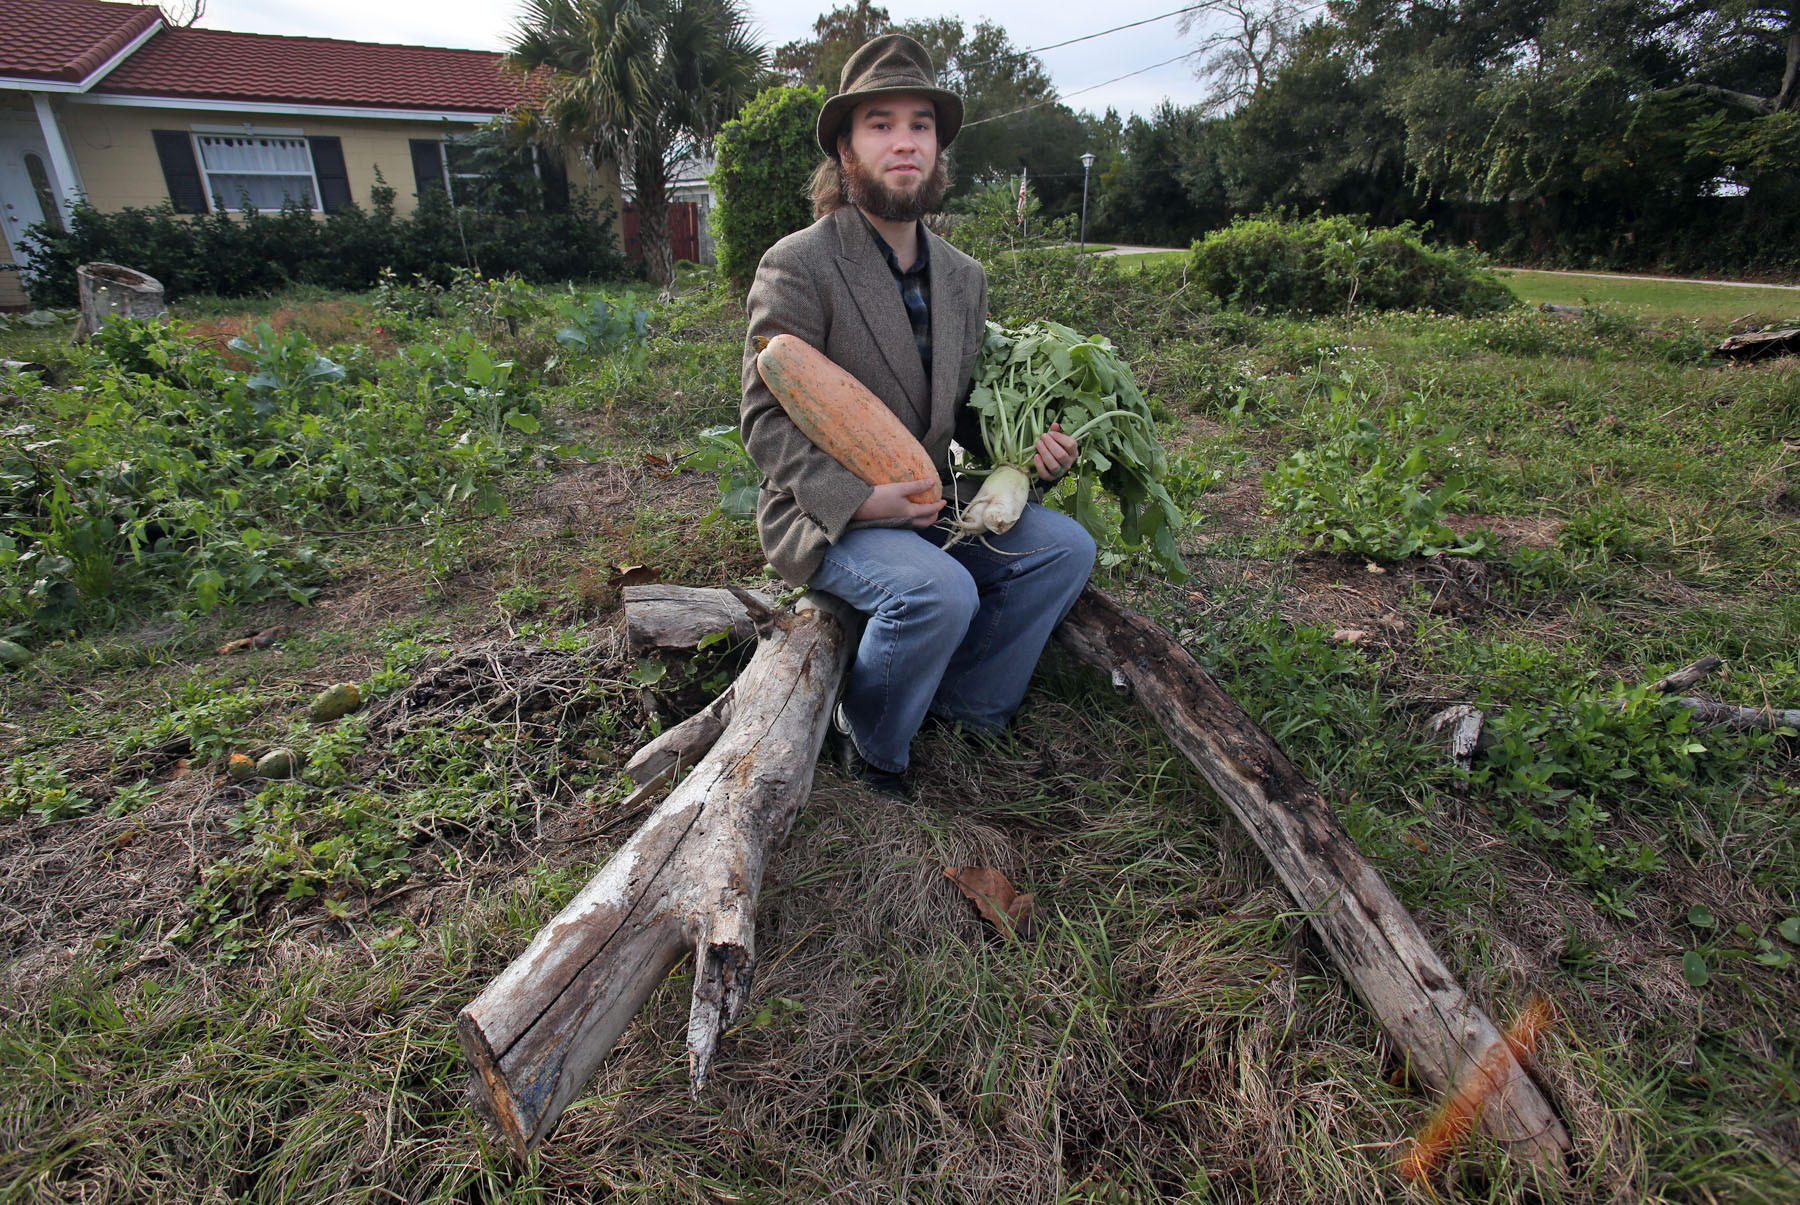 Sean Law, 32, holds a squash and a radish Friday, January 3, 2014 in his Longwood frontyard. Law has been fined $130,000 because he has never cut his lawn since moving in - and has left large stumps from trees he cut down. He refuses to clean up the property, saying it's his right because he is merely practicing Florida Friendly Landscaping, something the state encourages.